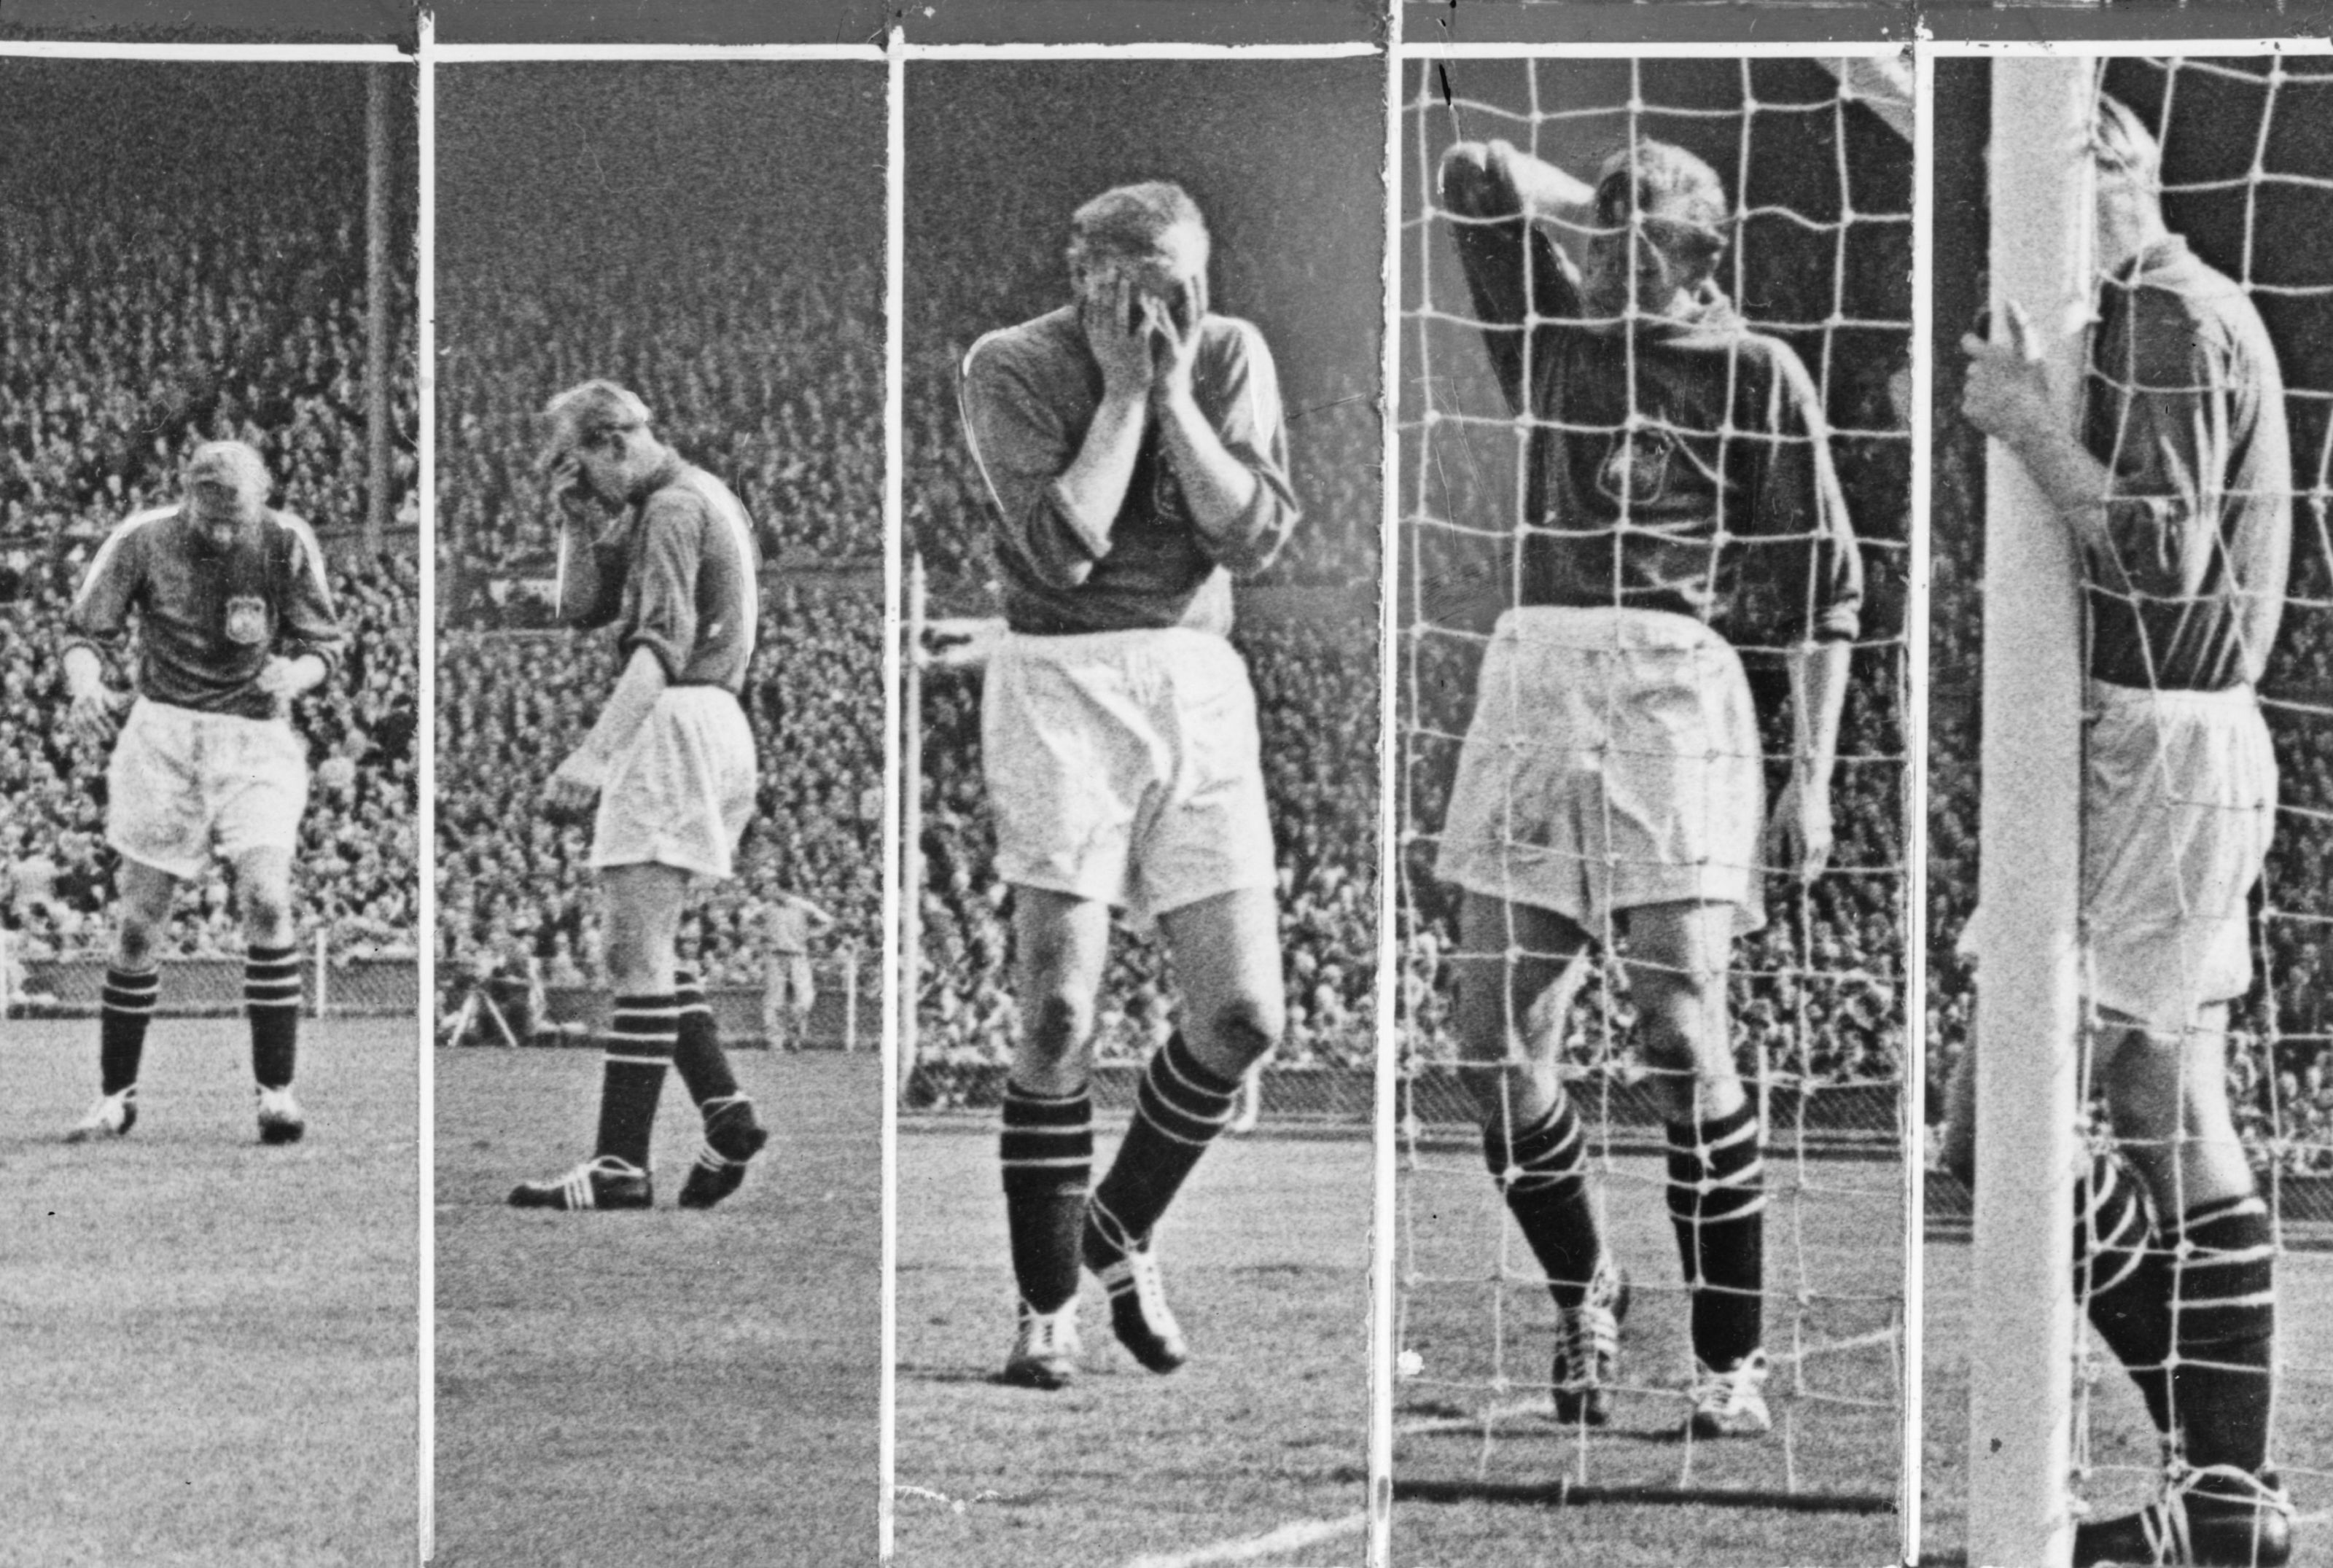 New Film – The Keeper Tells the Story of Manchester City's Bert Trautmann